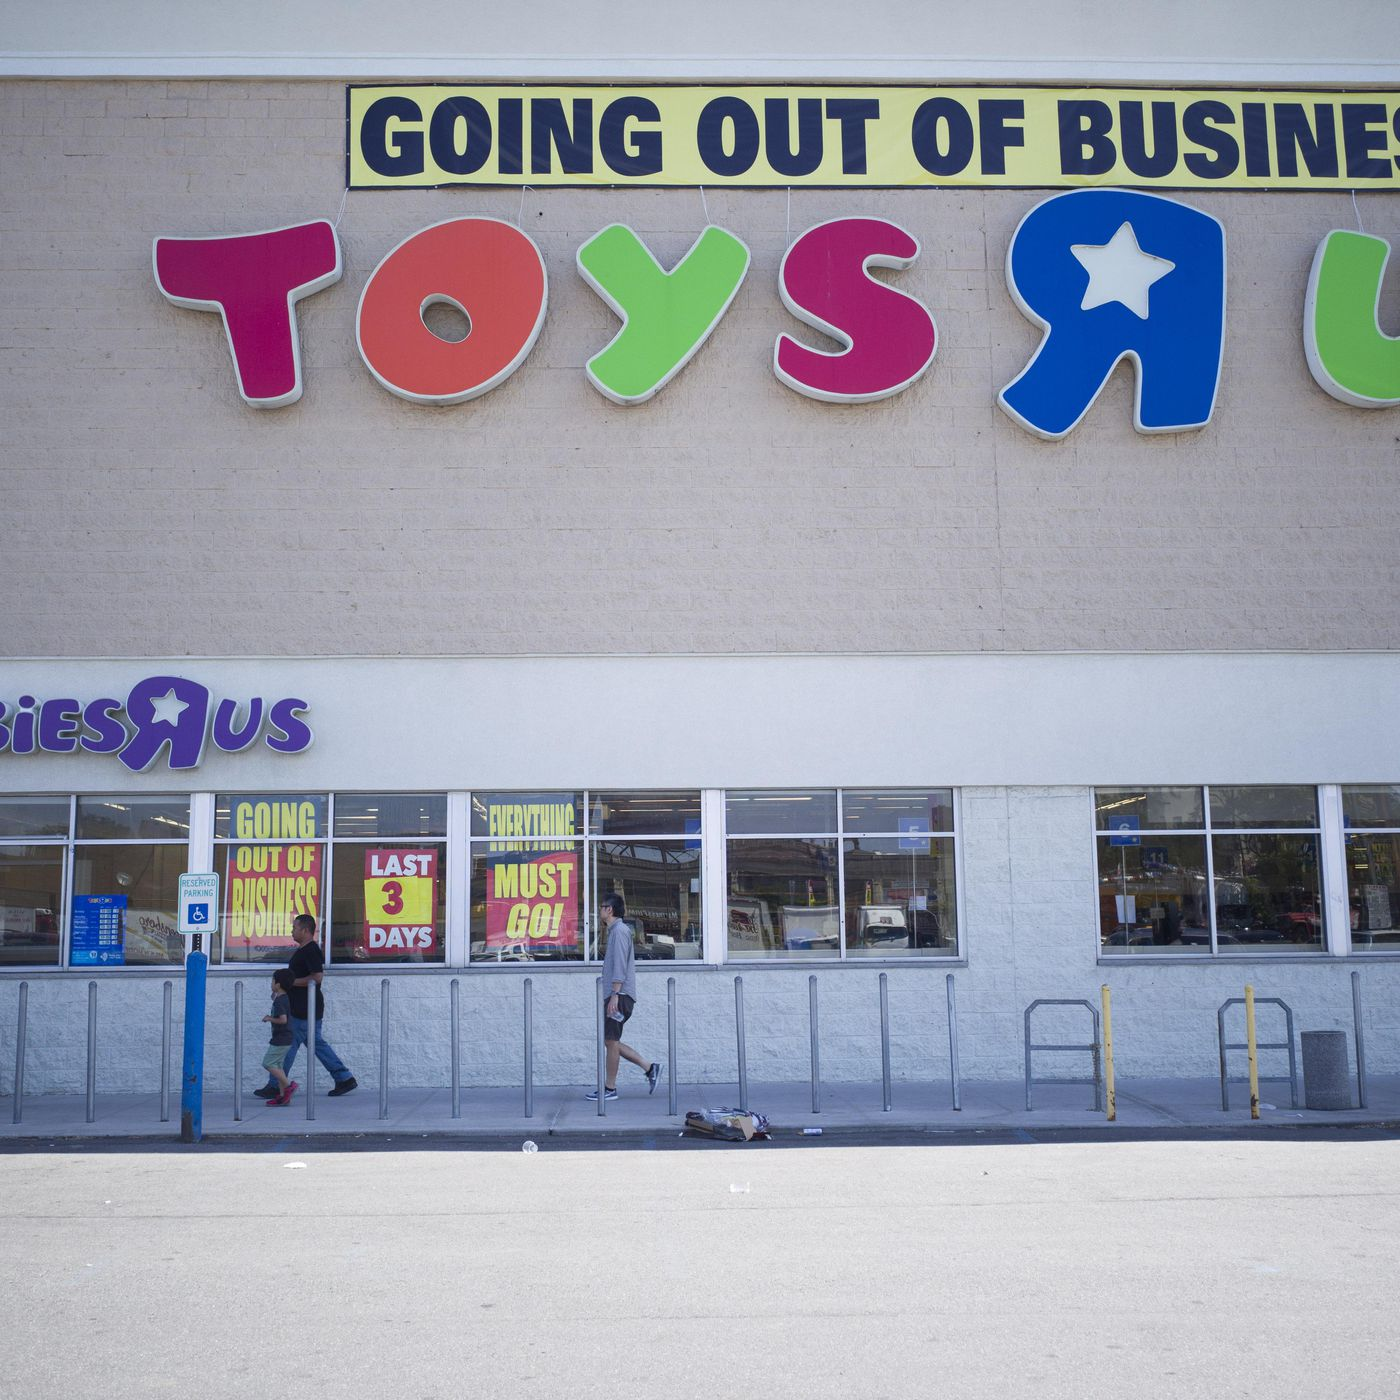 Toys R Us Declared Bankruptcy But